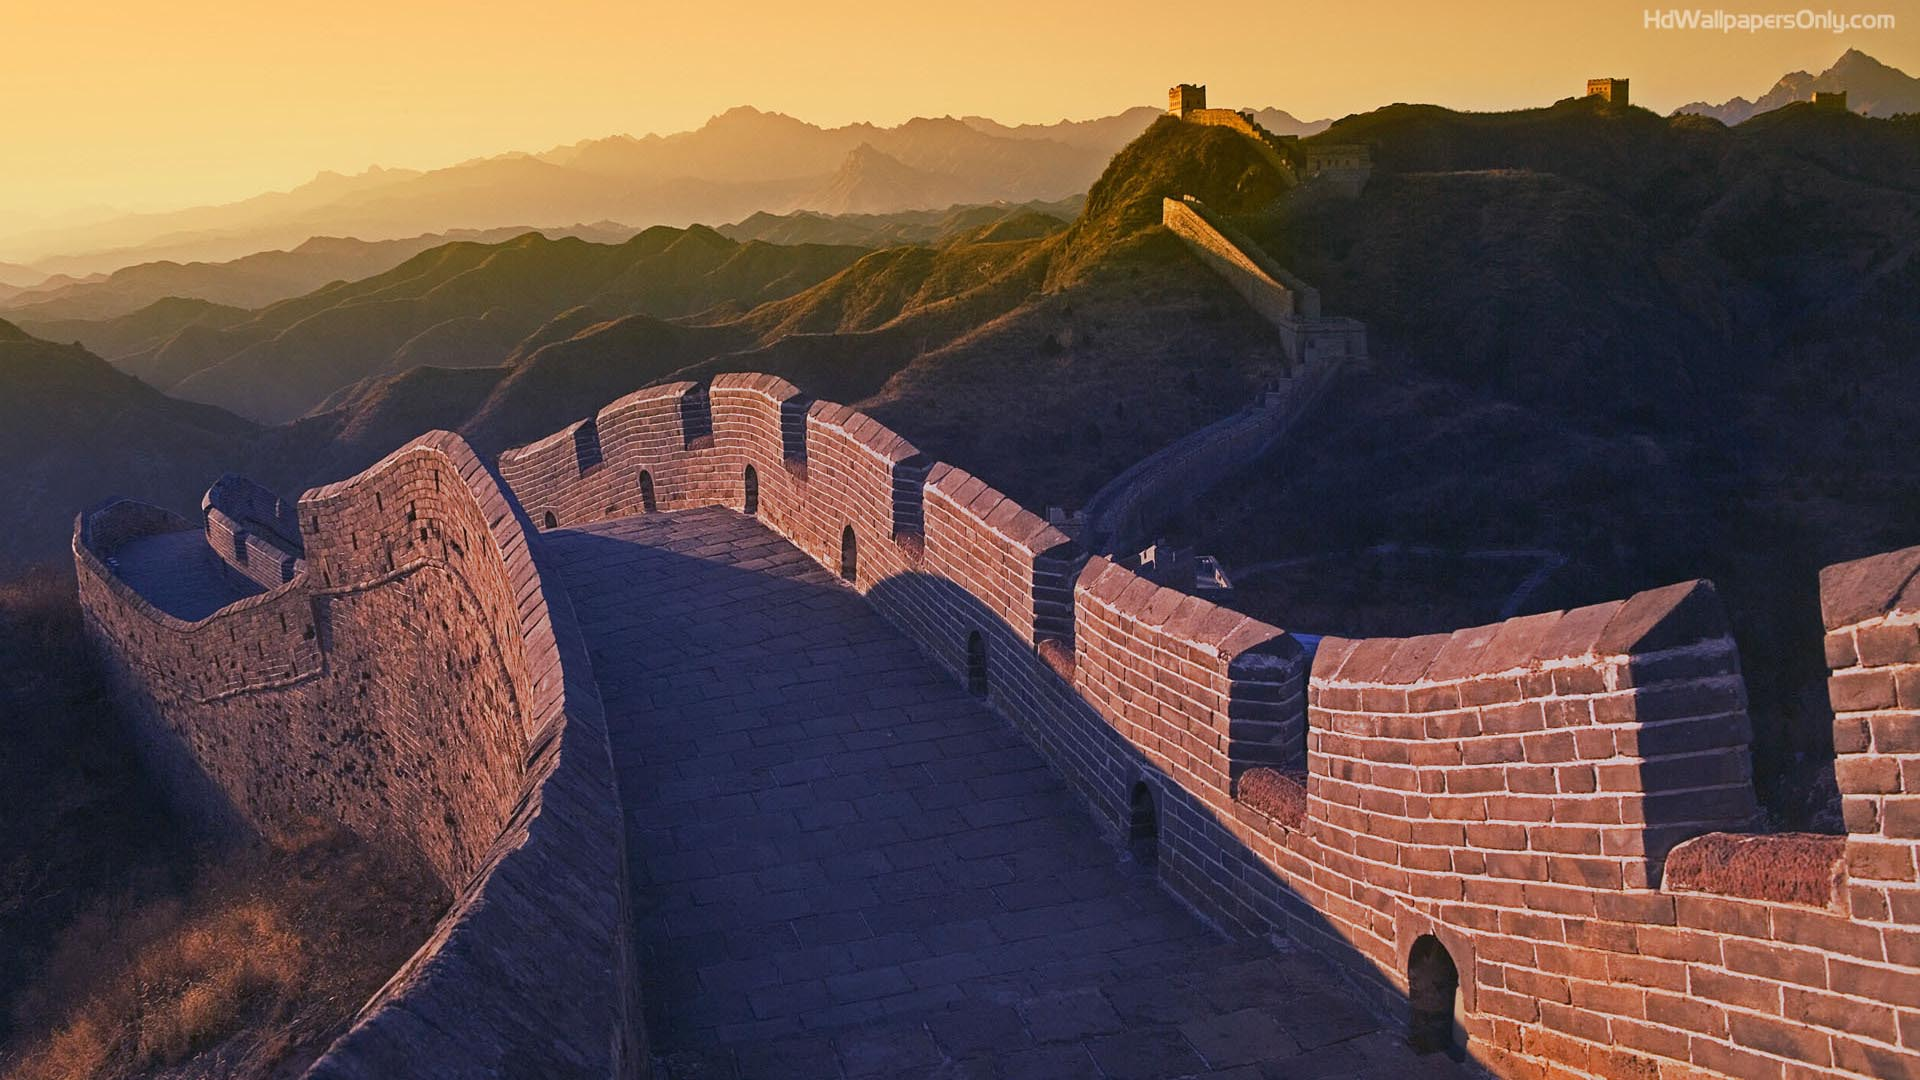 Great Wall Of China clipart Great Wall Of China Wallpaper High Resolution Clipart Whale Blue wallpaper Great